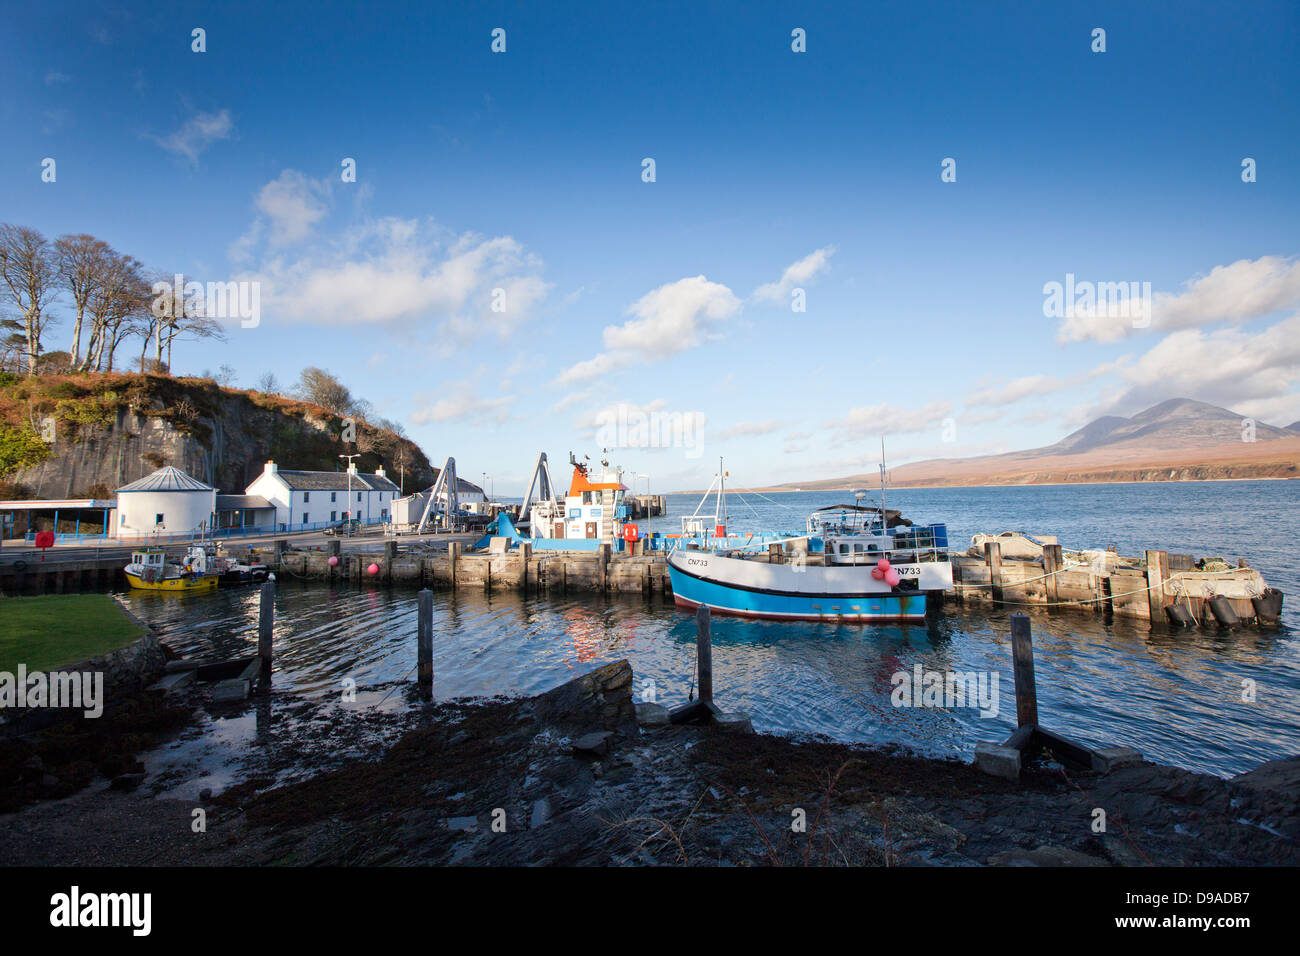 The Sounds of Islay and the Paps of Jura from Port Askaig. - Stock Image